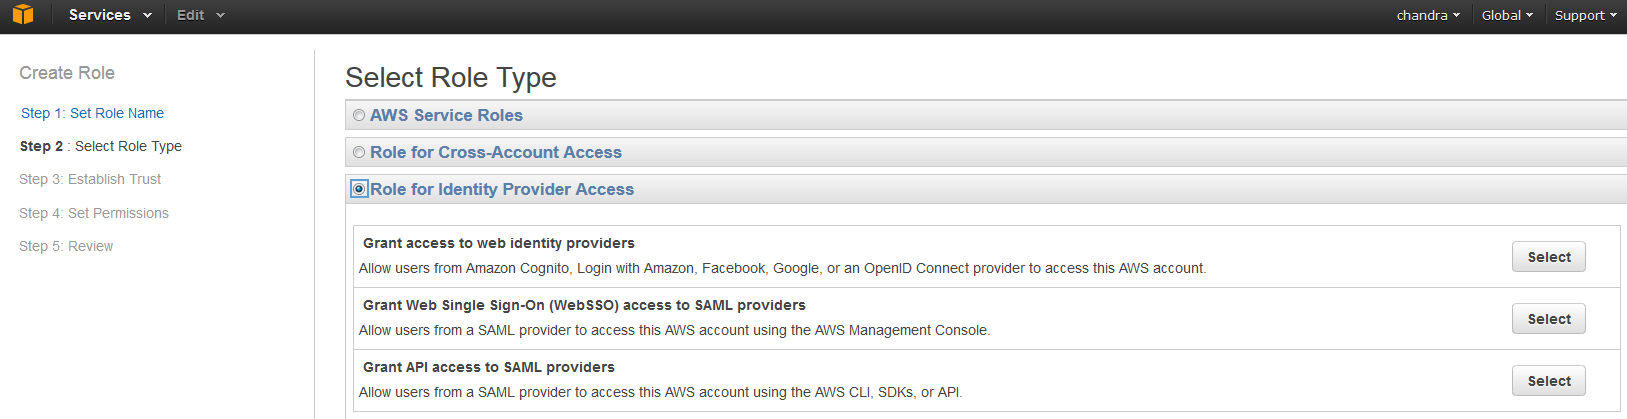 SAML SSO to AWS (Amazon Web Services) with NetIQ Access Manager